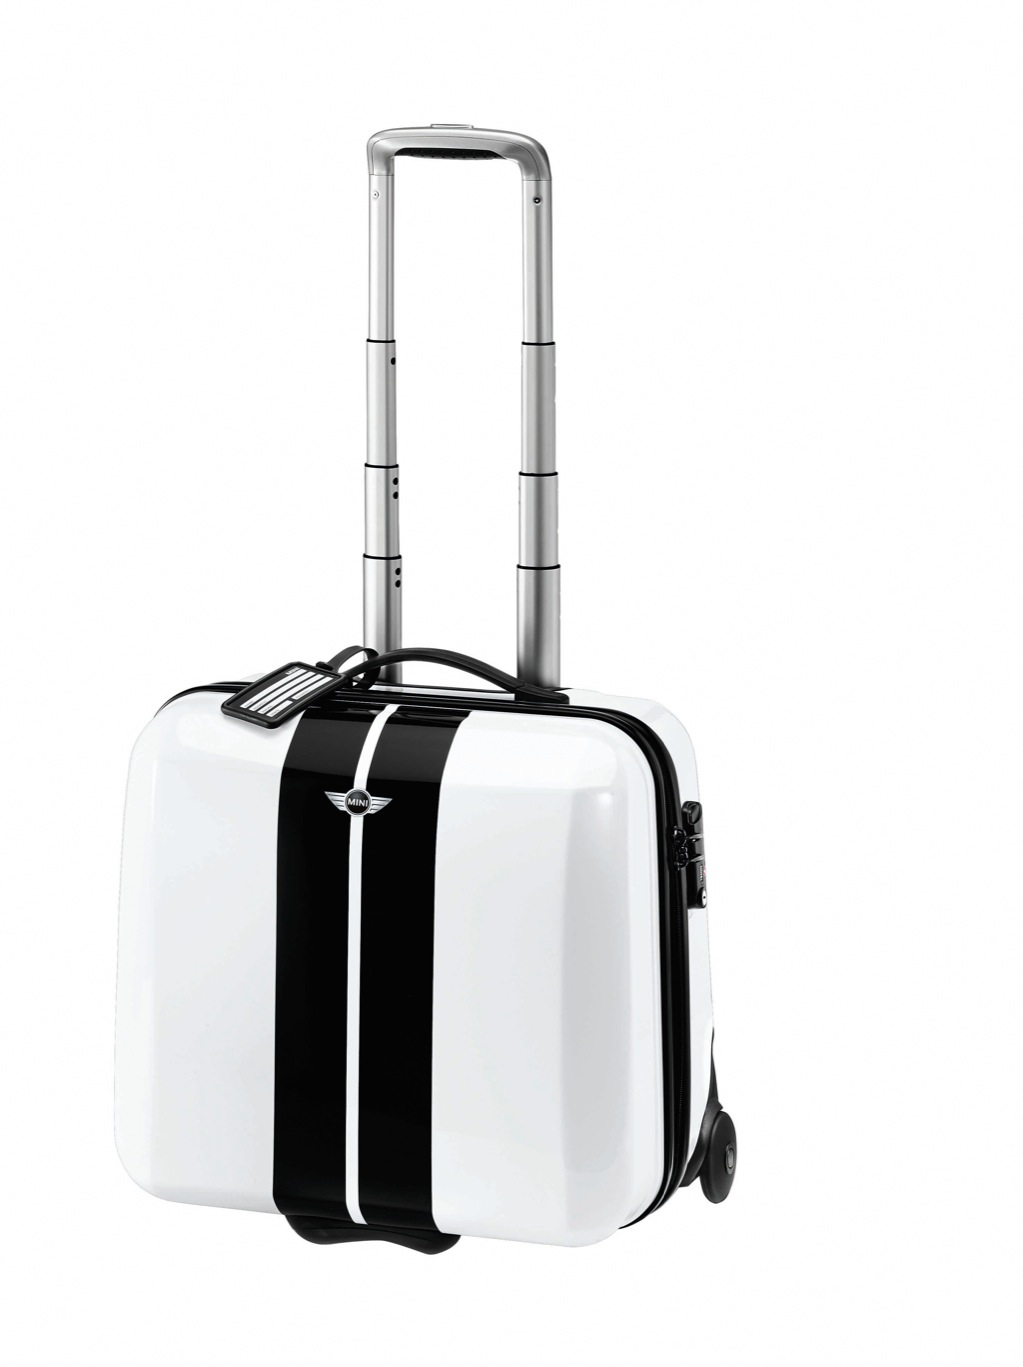 Mini Countryman Luggage Collection Launched Autoevolution